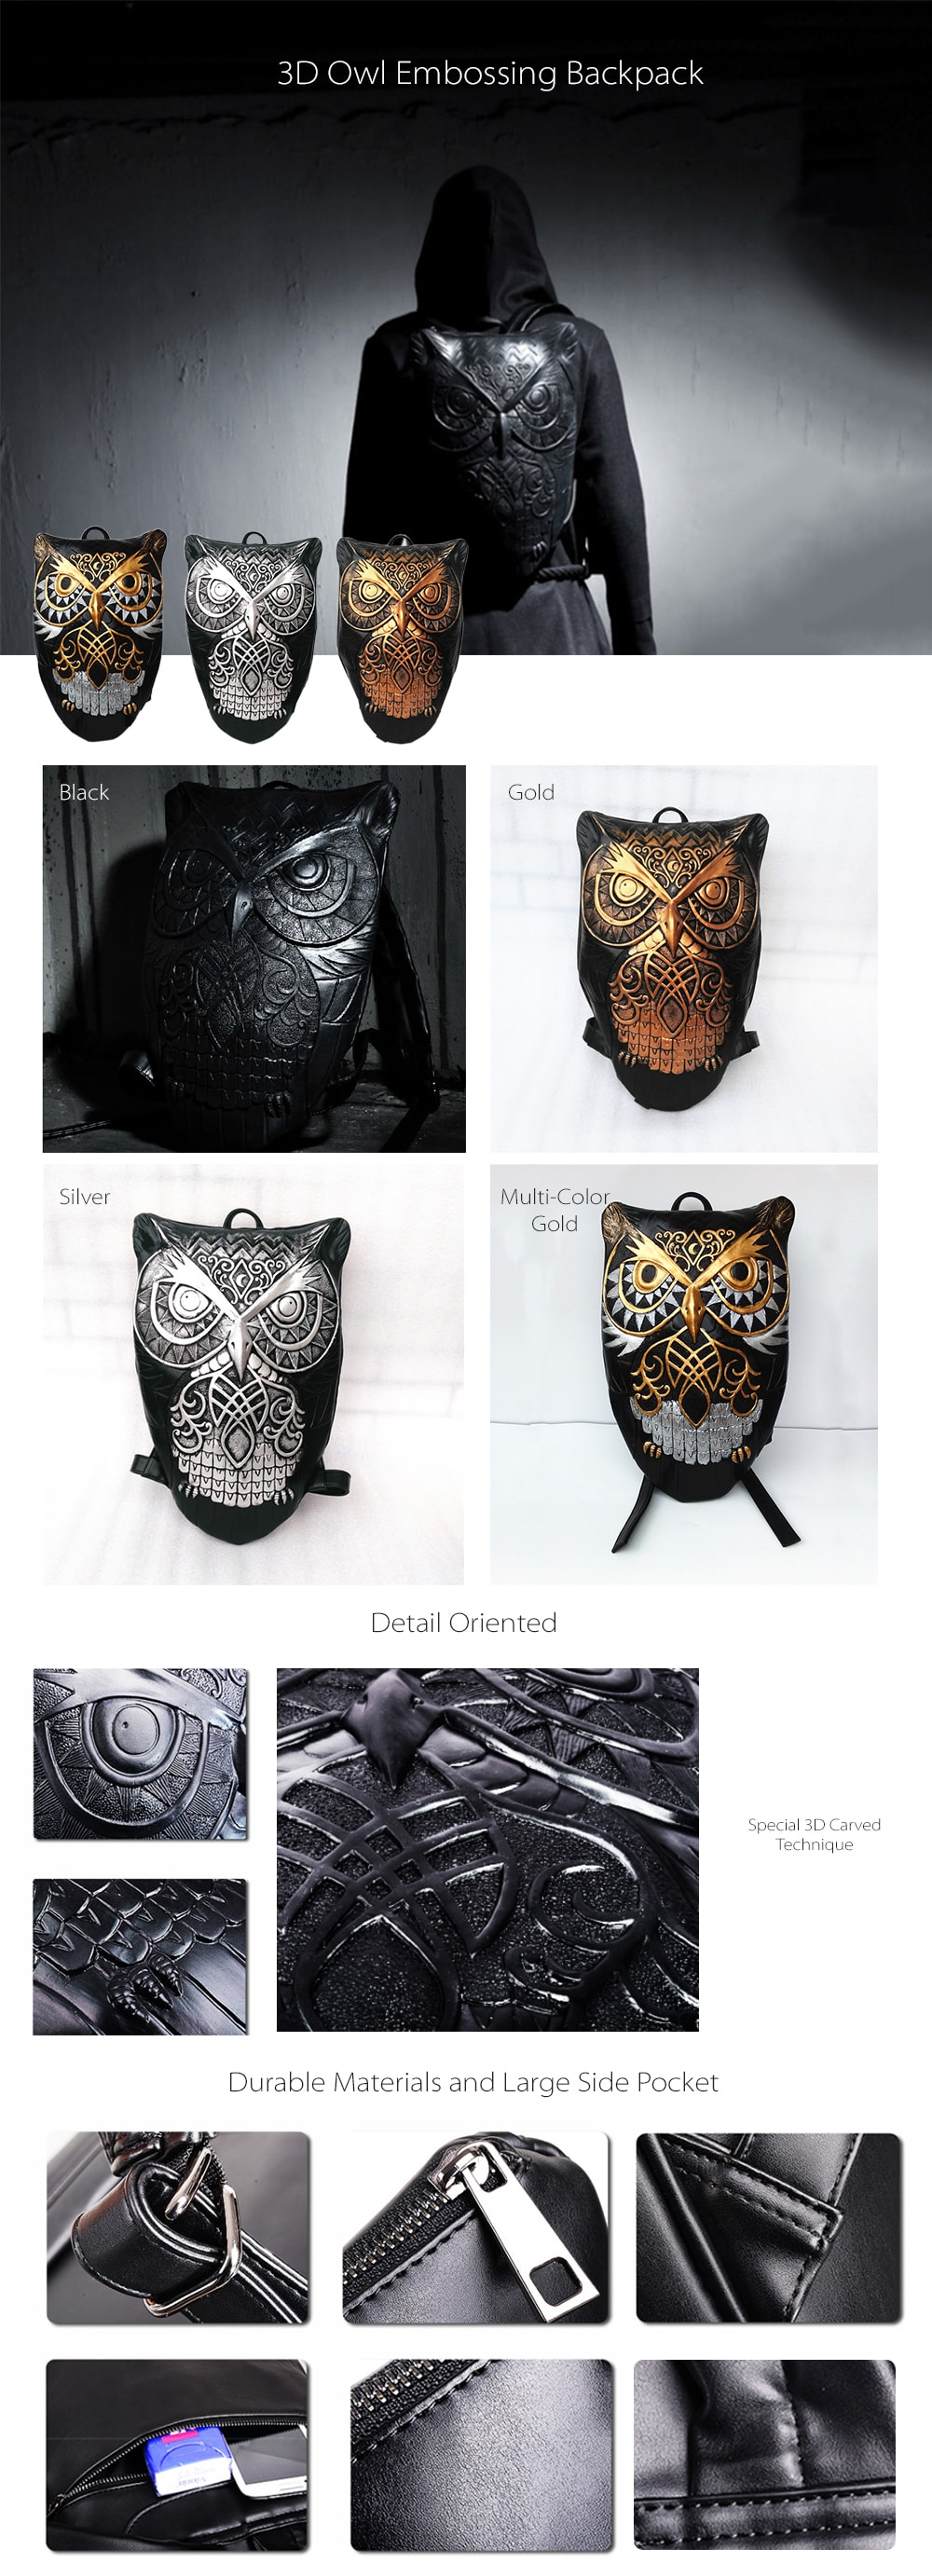 3D Owl Embossing Backpack Stylish Backpack For Everyday Use